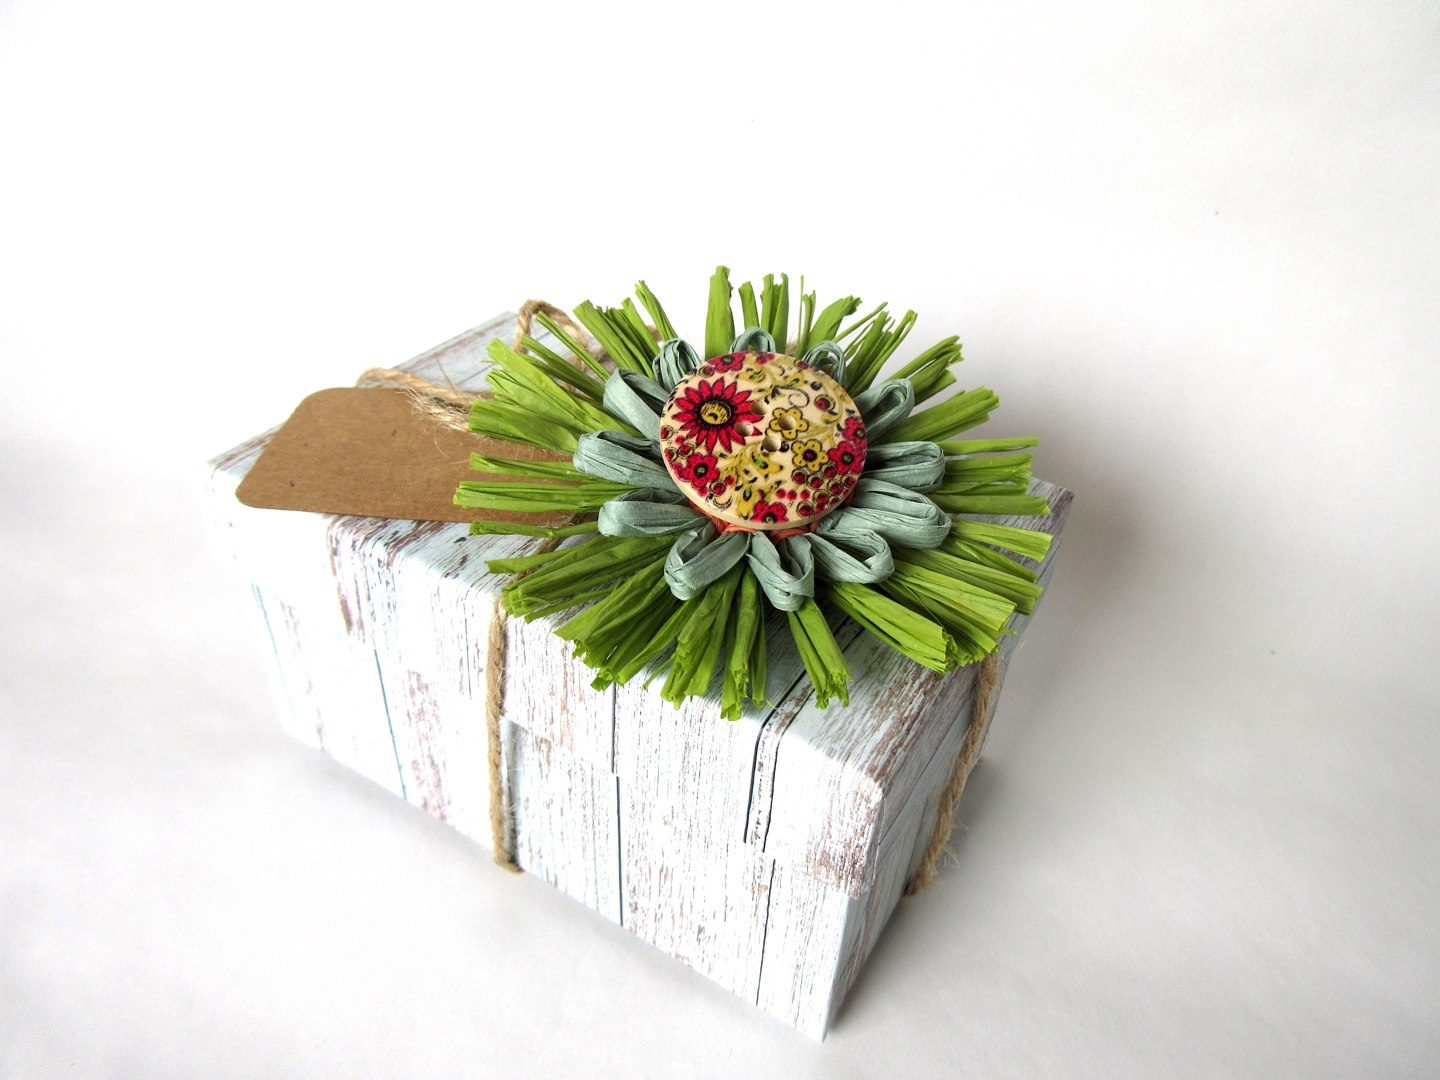 Gift wrapped box tied with string and a green and handmade red raffia flower made M Decor Botanica'